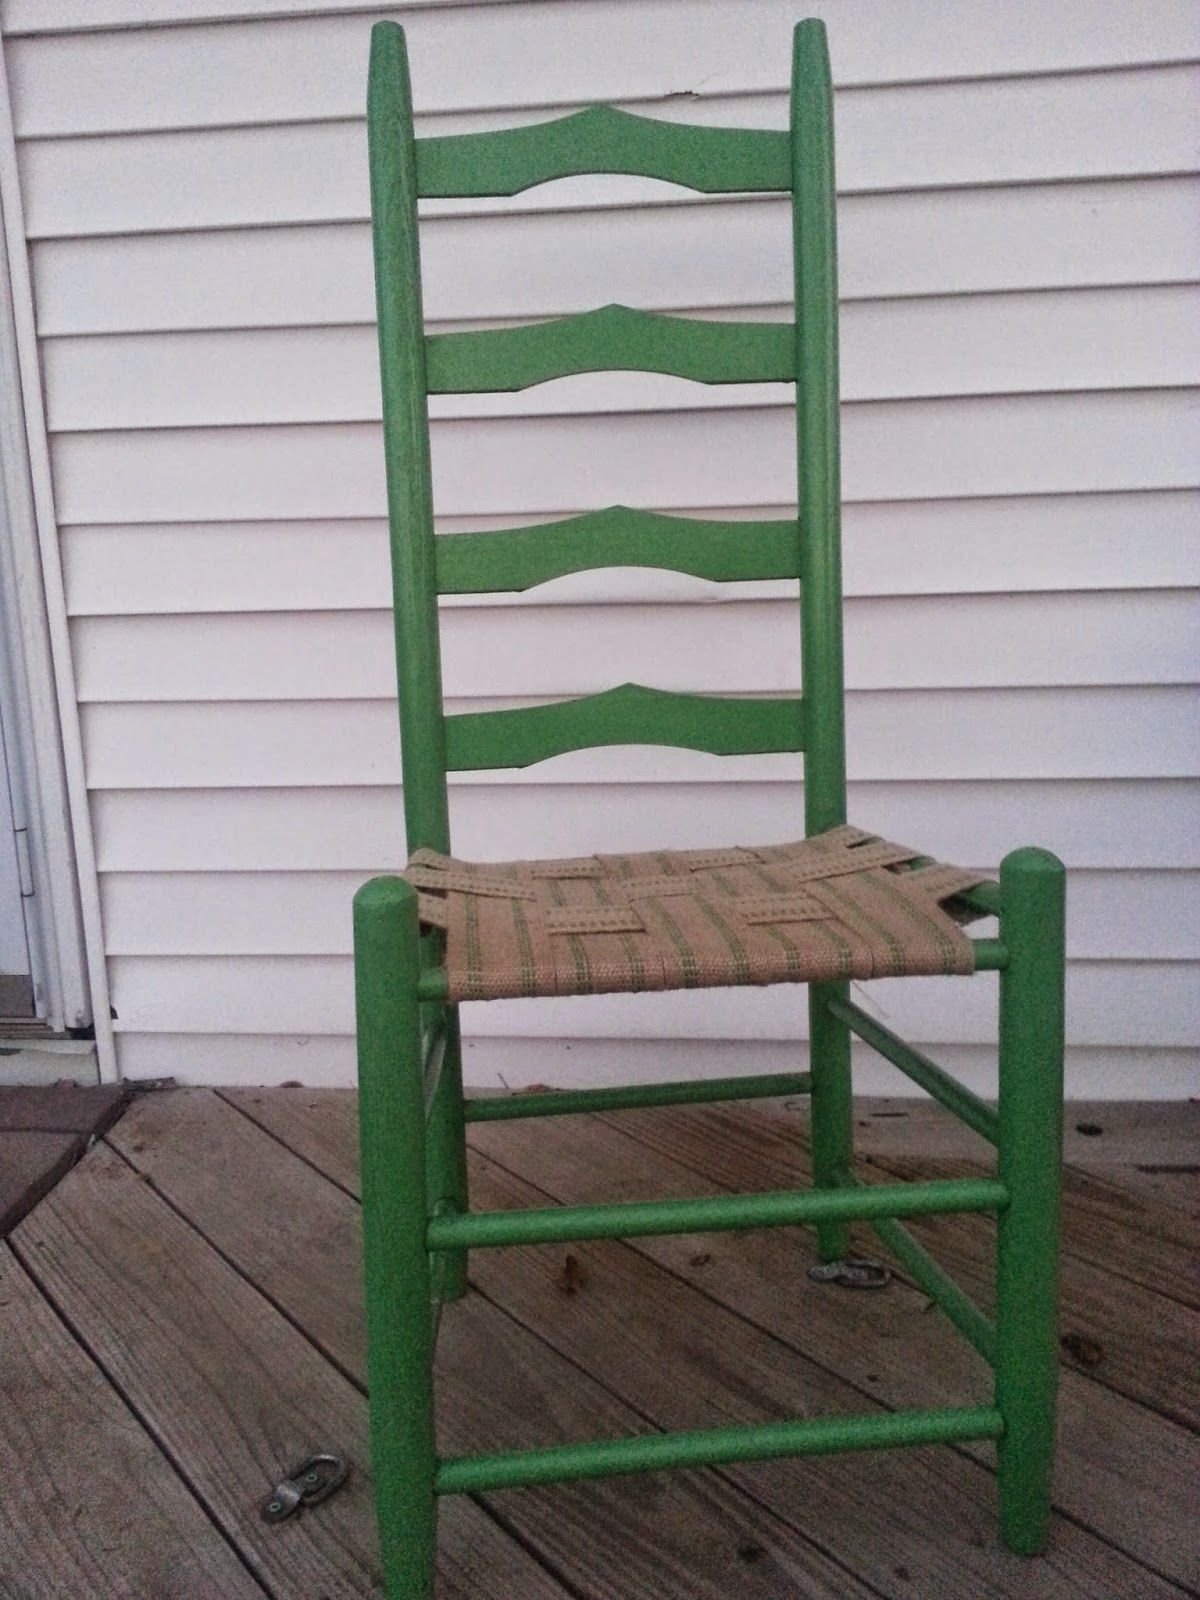 Adding Webbing To Replace The Cane Seat Deck On A Ladder Back Chair.  Reclaim, Renew, Remodel